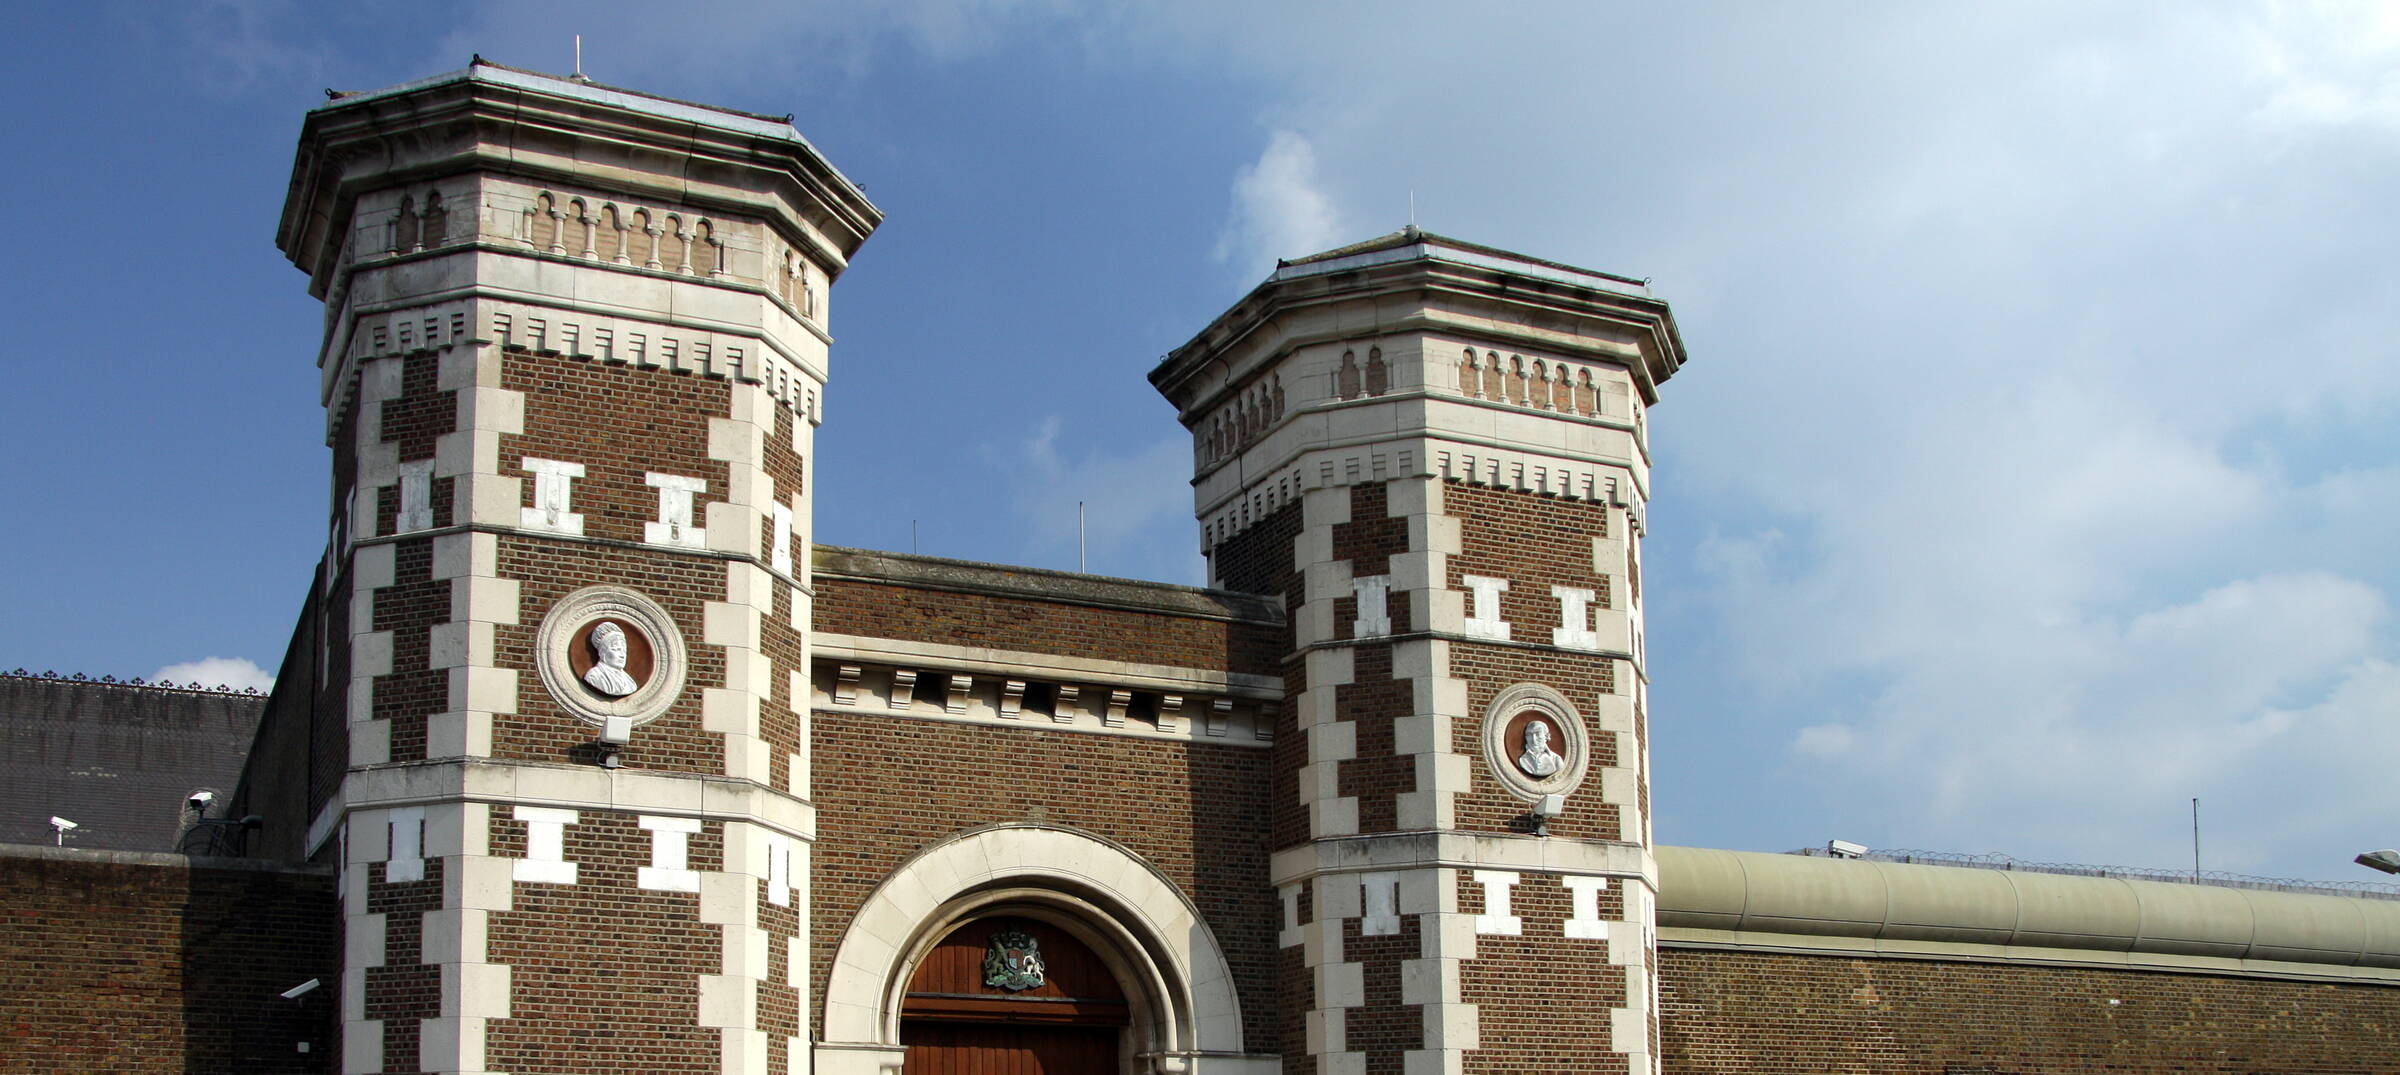 Tussell Briefing: MoJ offers £1.8B for prison transport & more stories